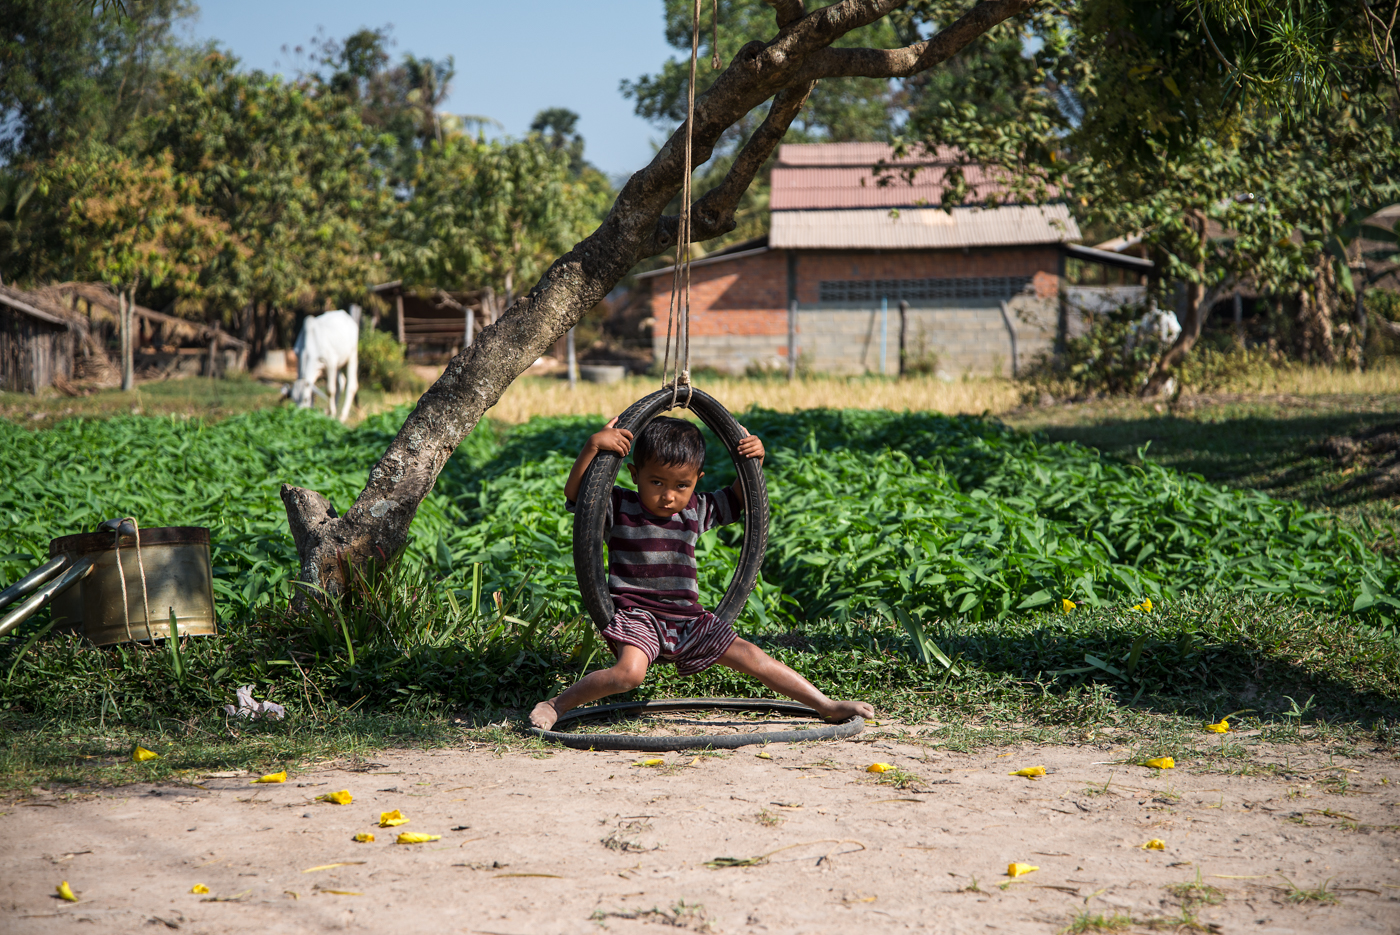 A young boy hangs on a tire swing in the rural Cambodian countryside.